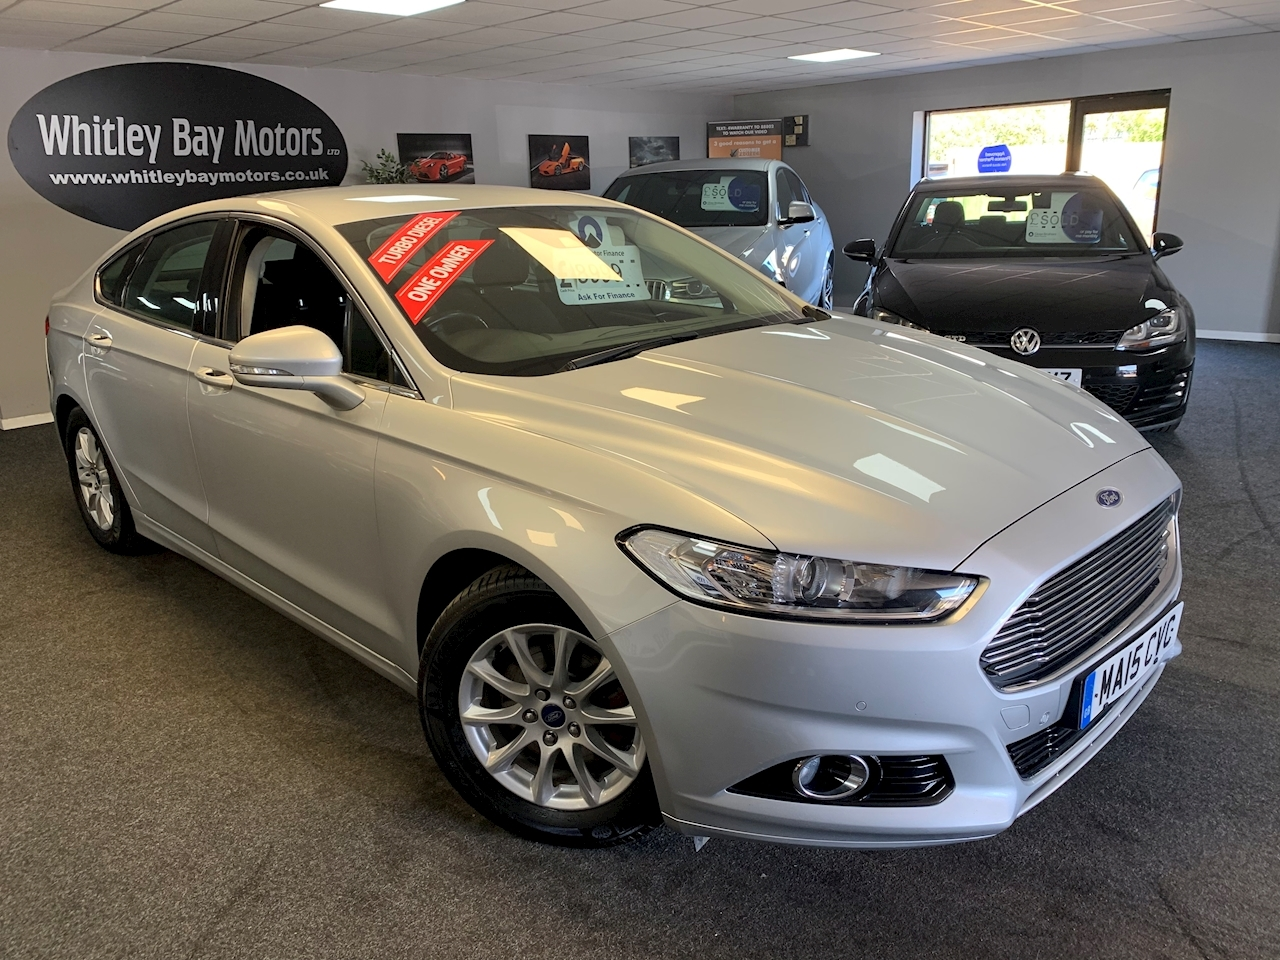 Mondeo Titanium Econetic Tdci Hatchback 2.0 Manual Diesel